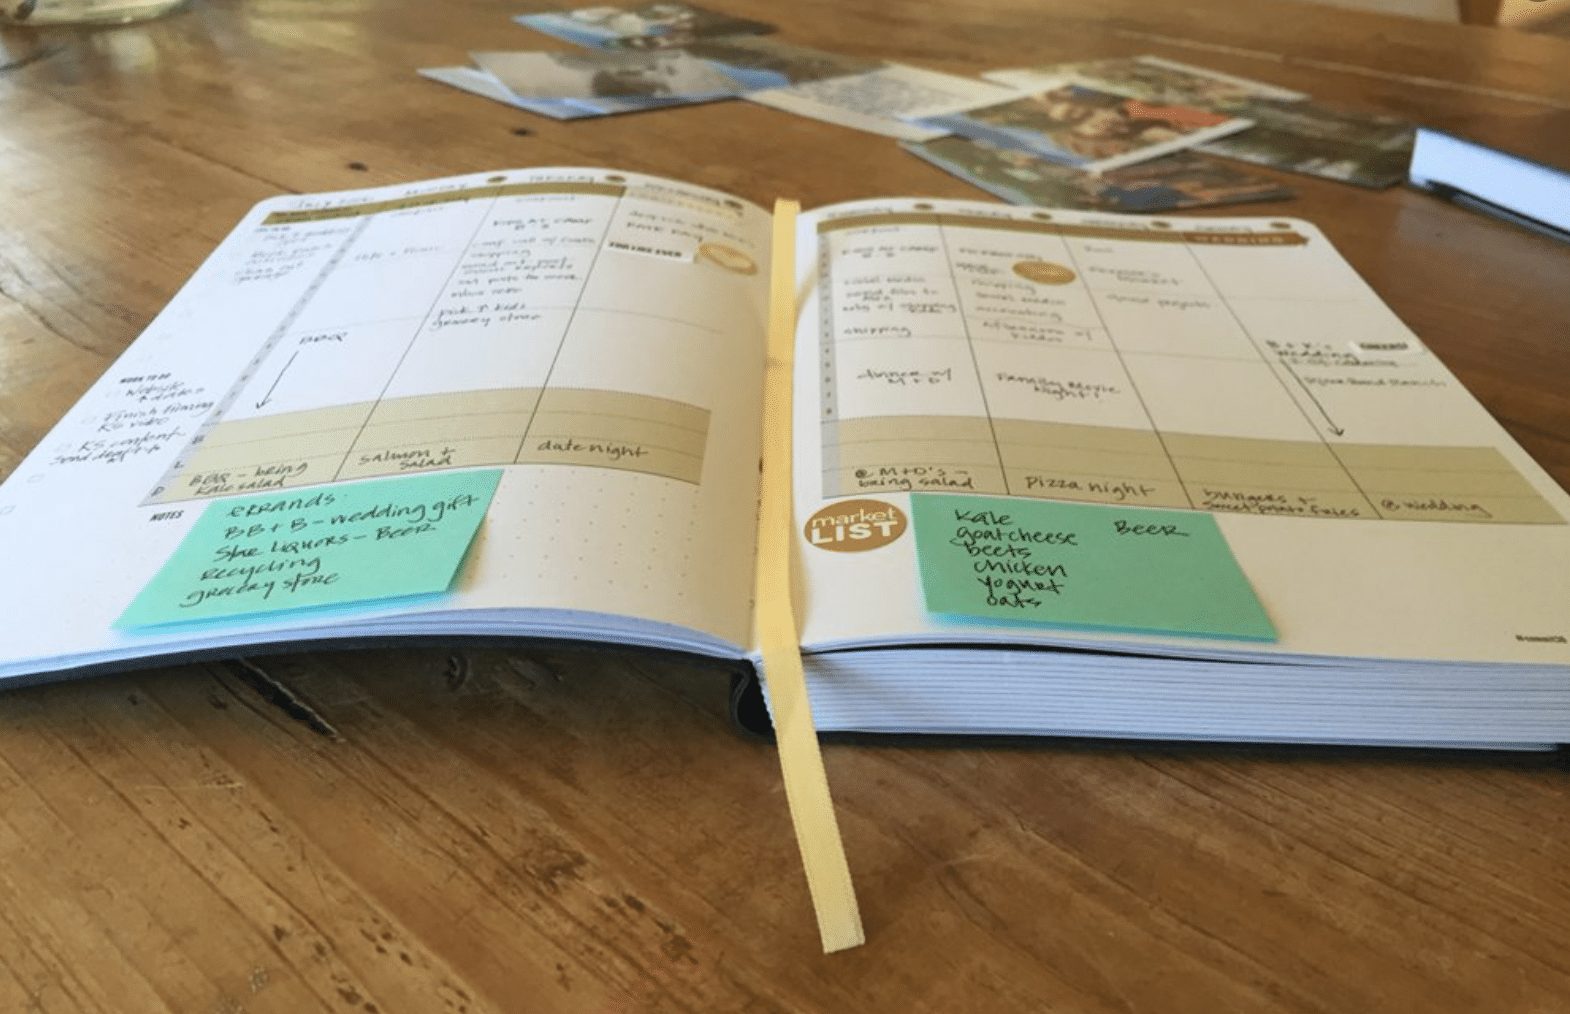 Undated Planners Must Haves For Creative Women Business